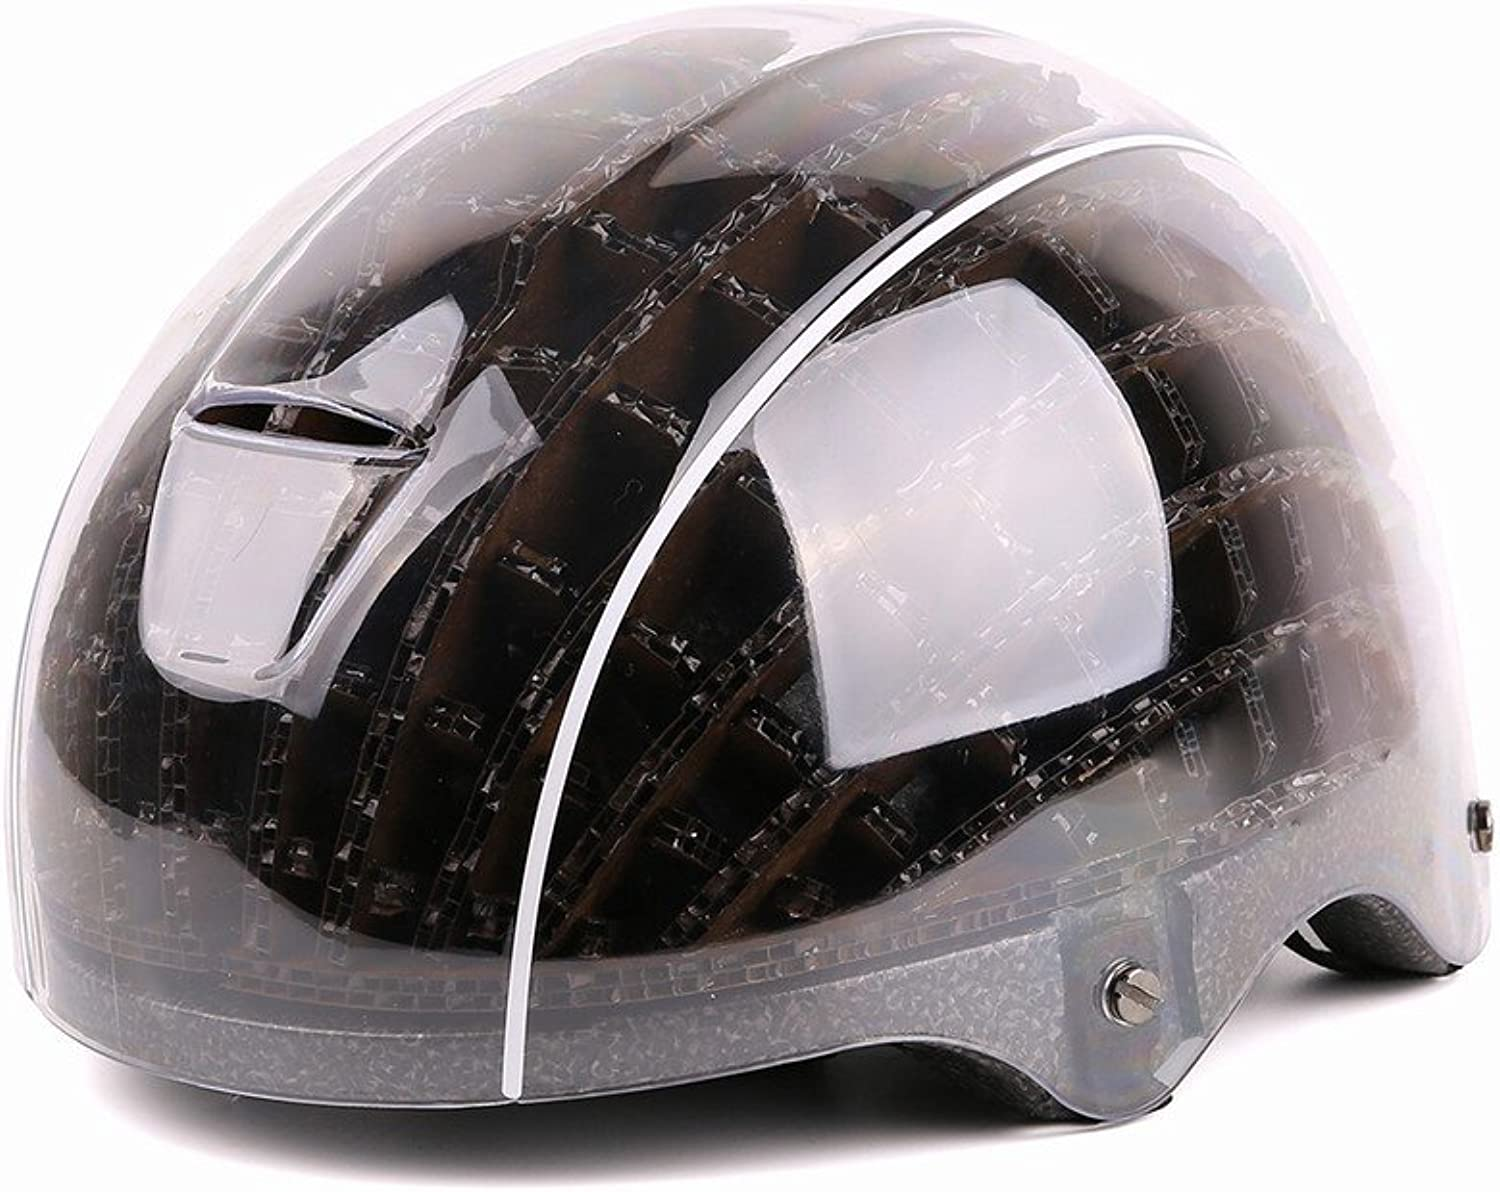 GJJ Cycling Helmet Mountain Road Bike Helmet, Lightweight Outdoor Sports Double Wooden Helmet,A,M